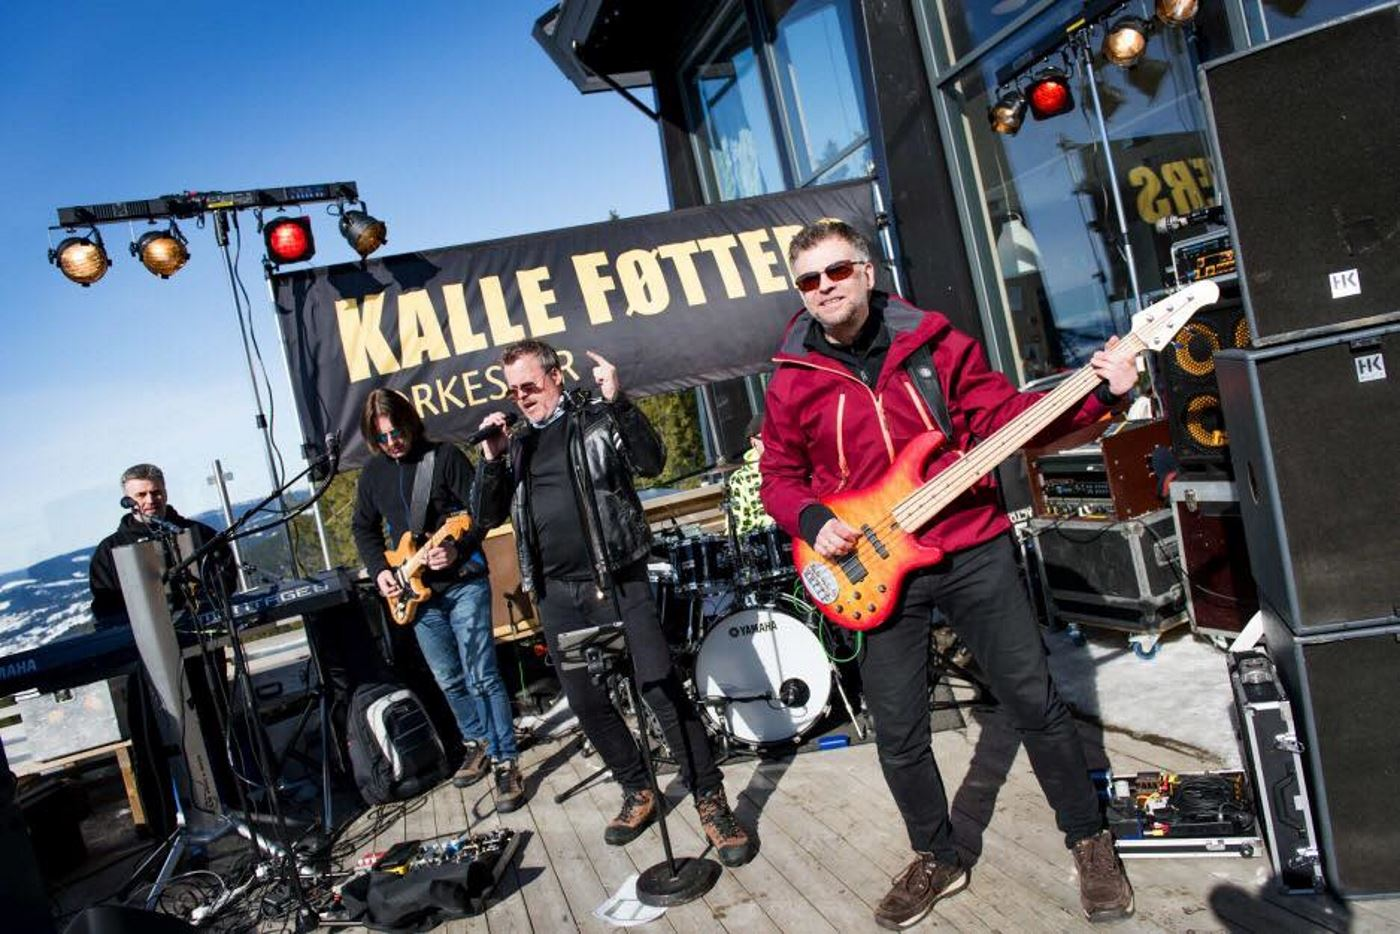 Apre's ski with the Kalle Føtter orchestra